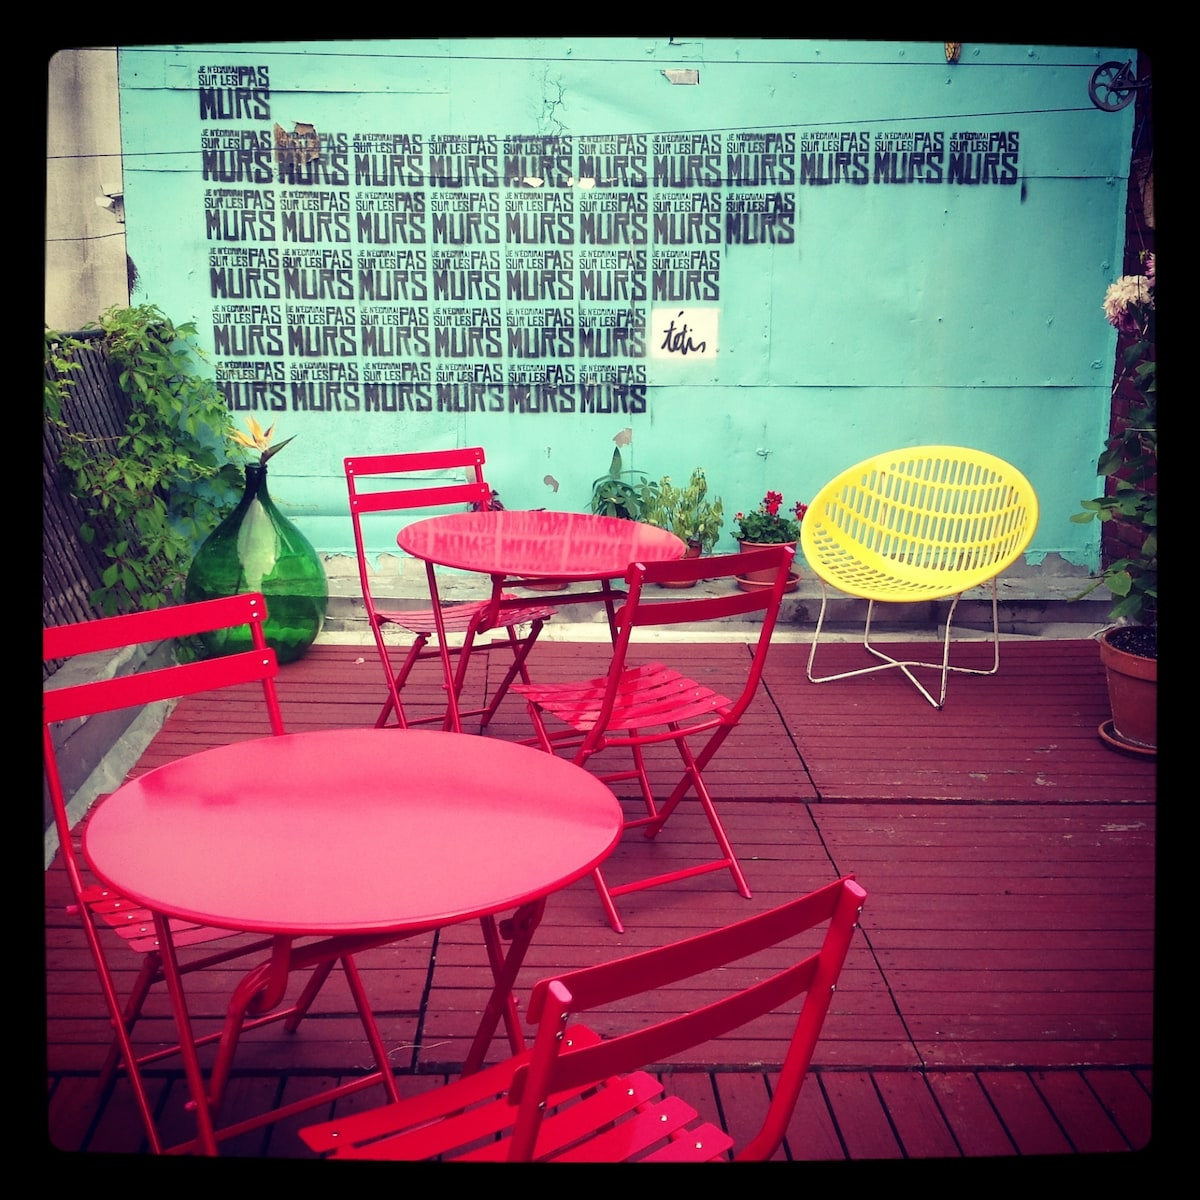 We invite you to hang out, have a beer on our terrace! It is much larger than it looks. It is approximately 400 sq. feet.